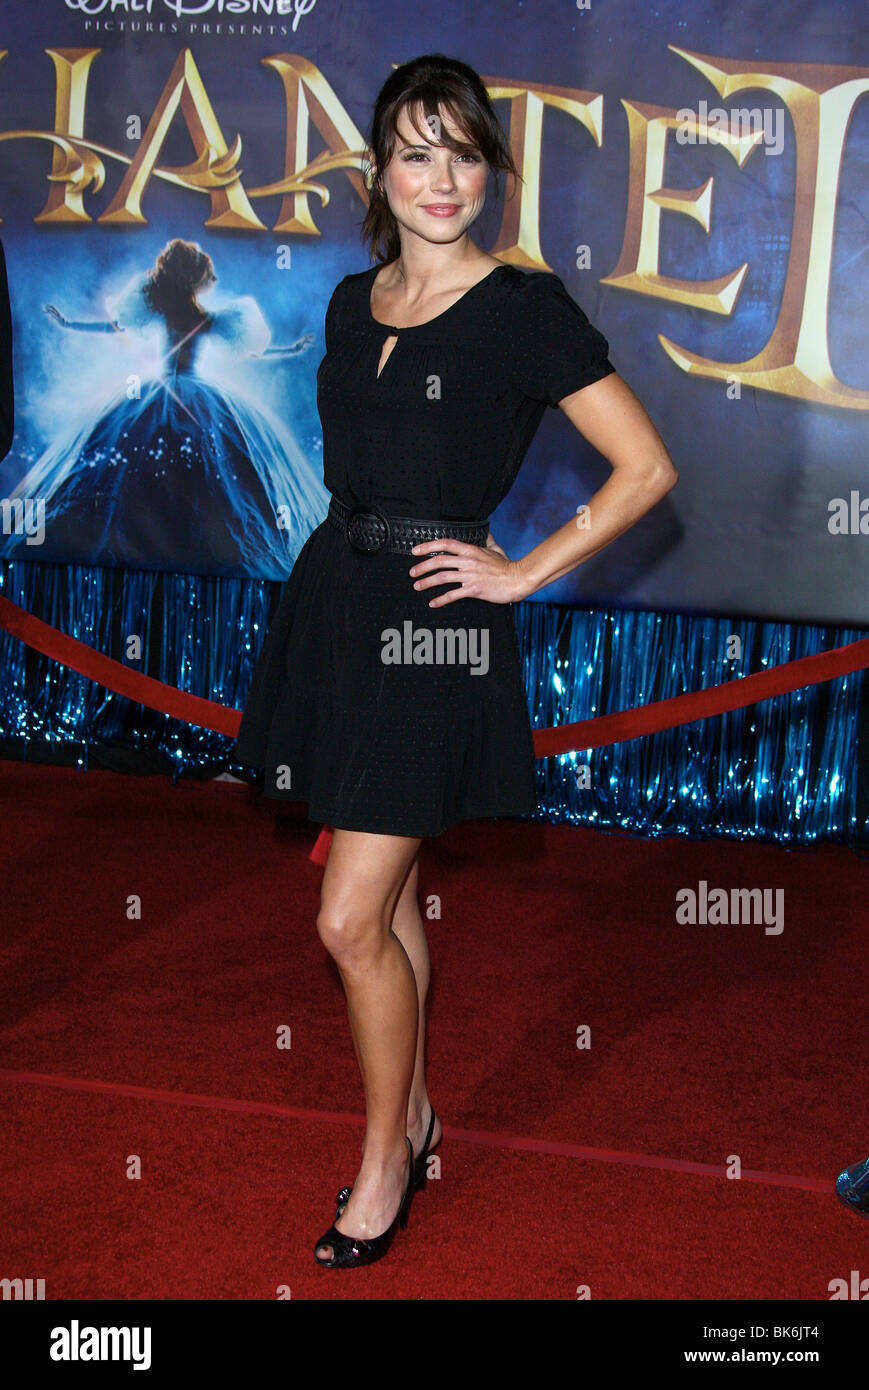 LINDA CARDELLINI verzauberte Welt PREMIERE HOLLYWOOD LOS ANGELES USA 17. November 2007 Stockbild